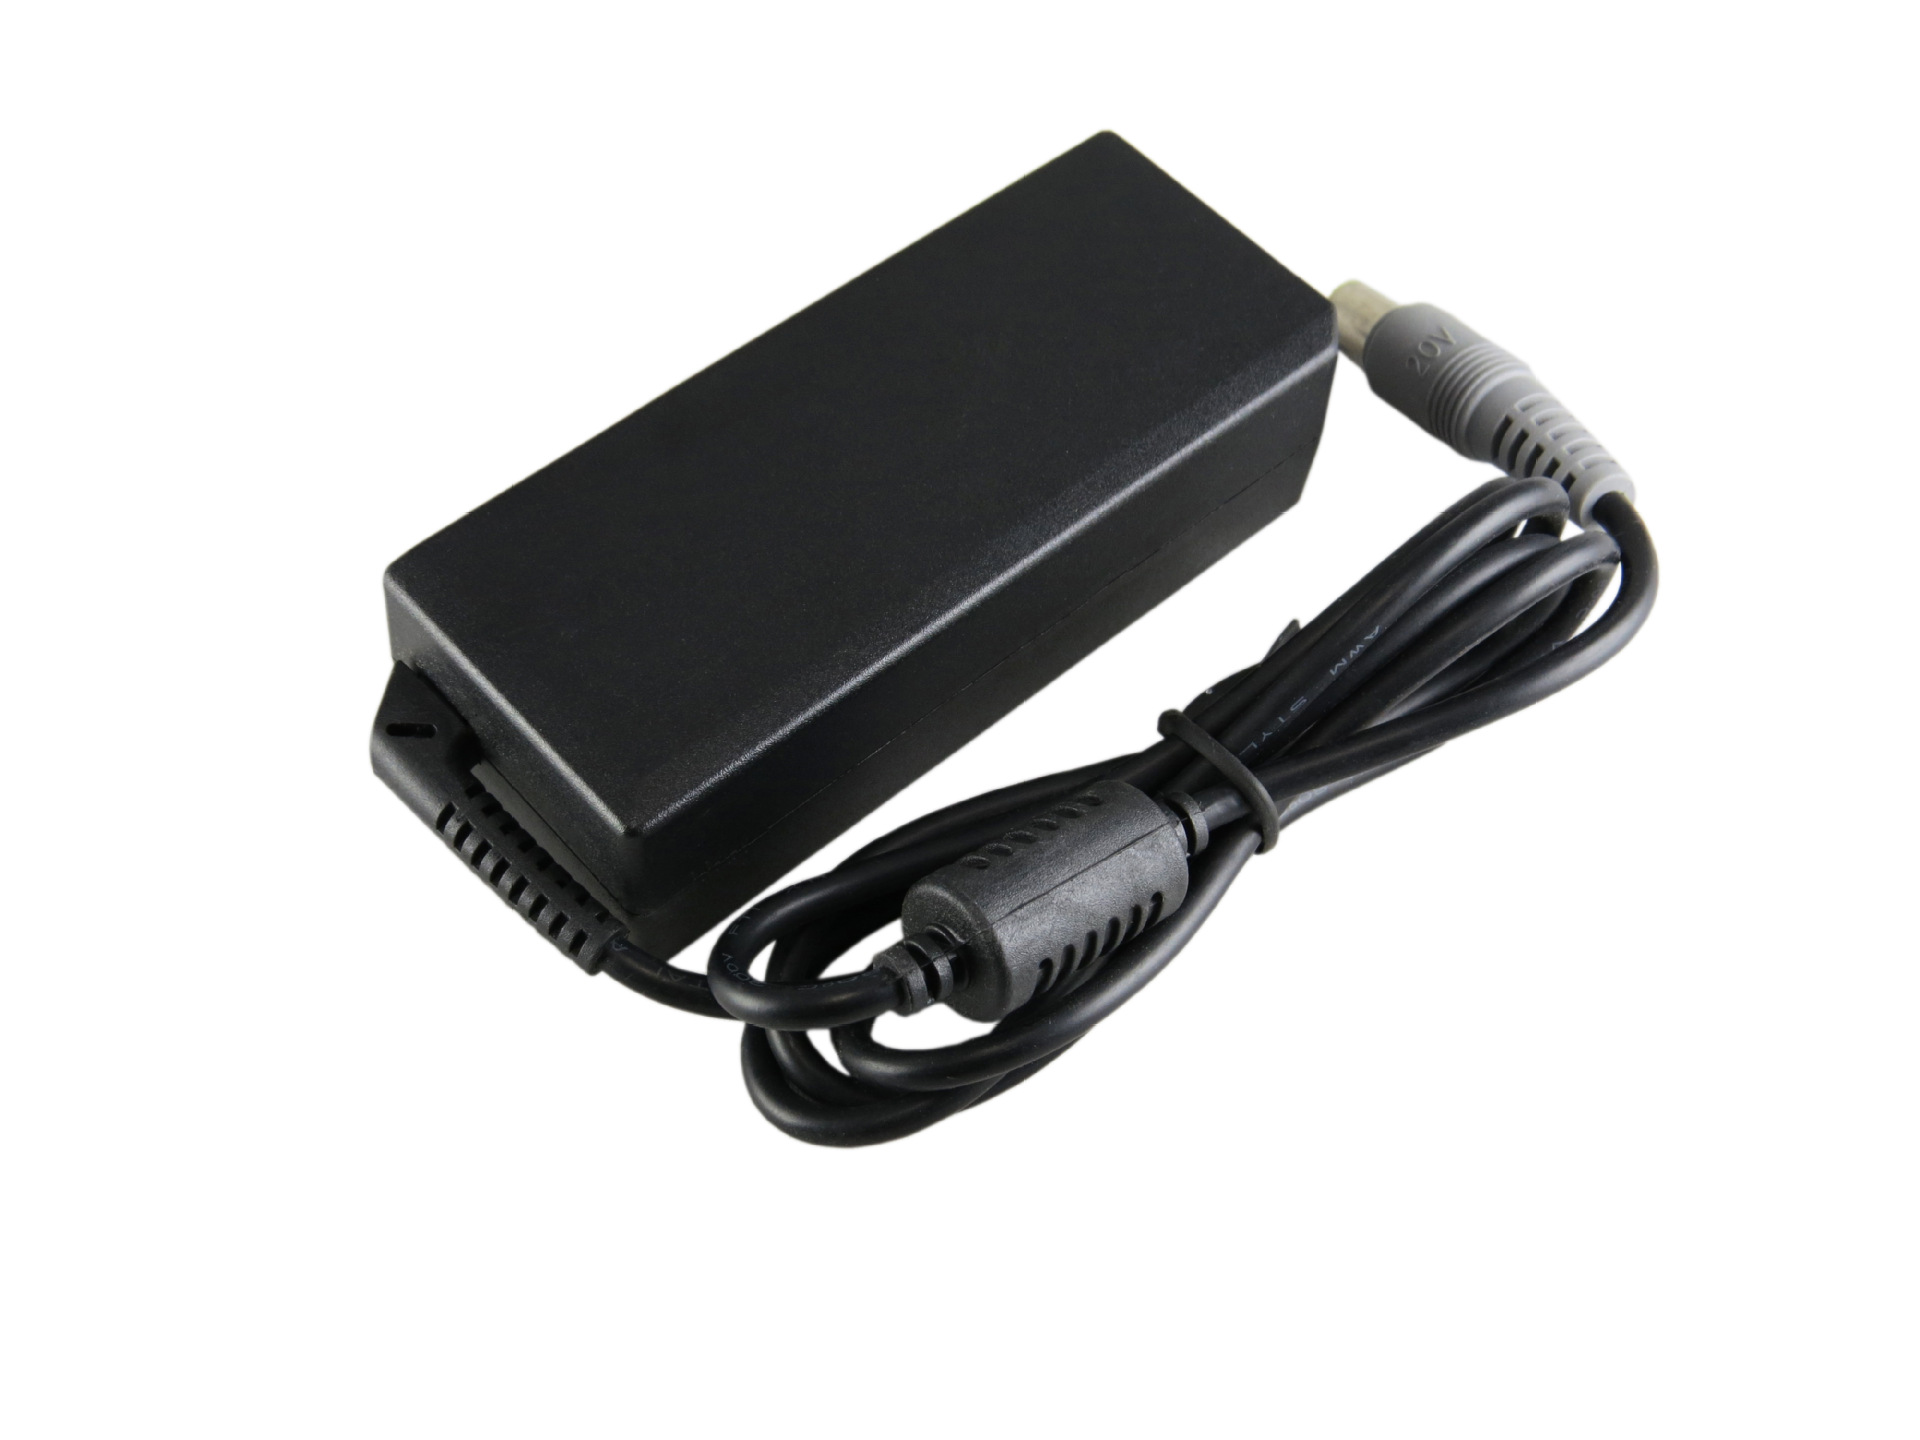 20V 3.25A 65W Laptop Ac Power adaptor adaptor For Lenovo T410 T510 Sl410 Sl410K Sl510 Sl510K T510I X201 X220 X230